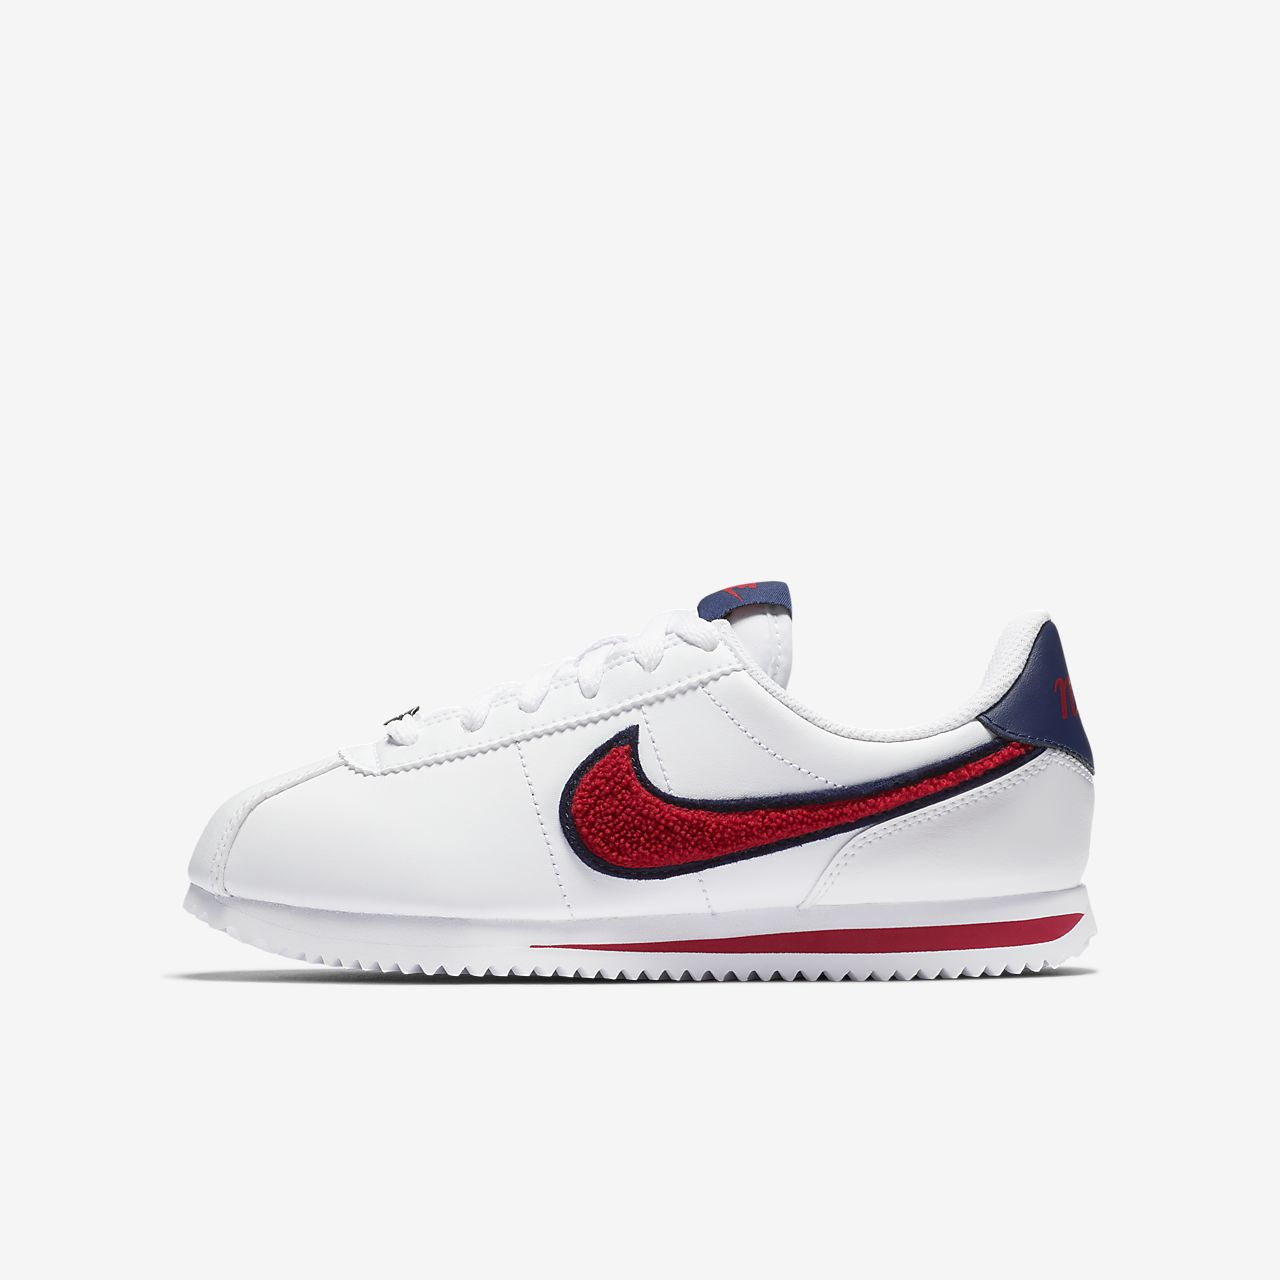 differently 6dc01 35d0a ... over the running world with its unprecedented cushioning. meanwhile in  southern california the versatile silhouette was 88aff dc373  italy nike  cortez ...